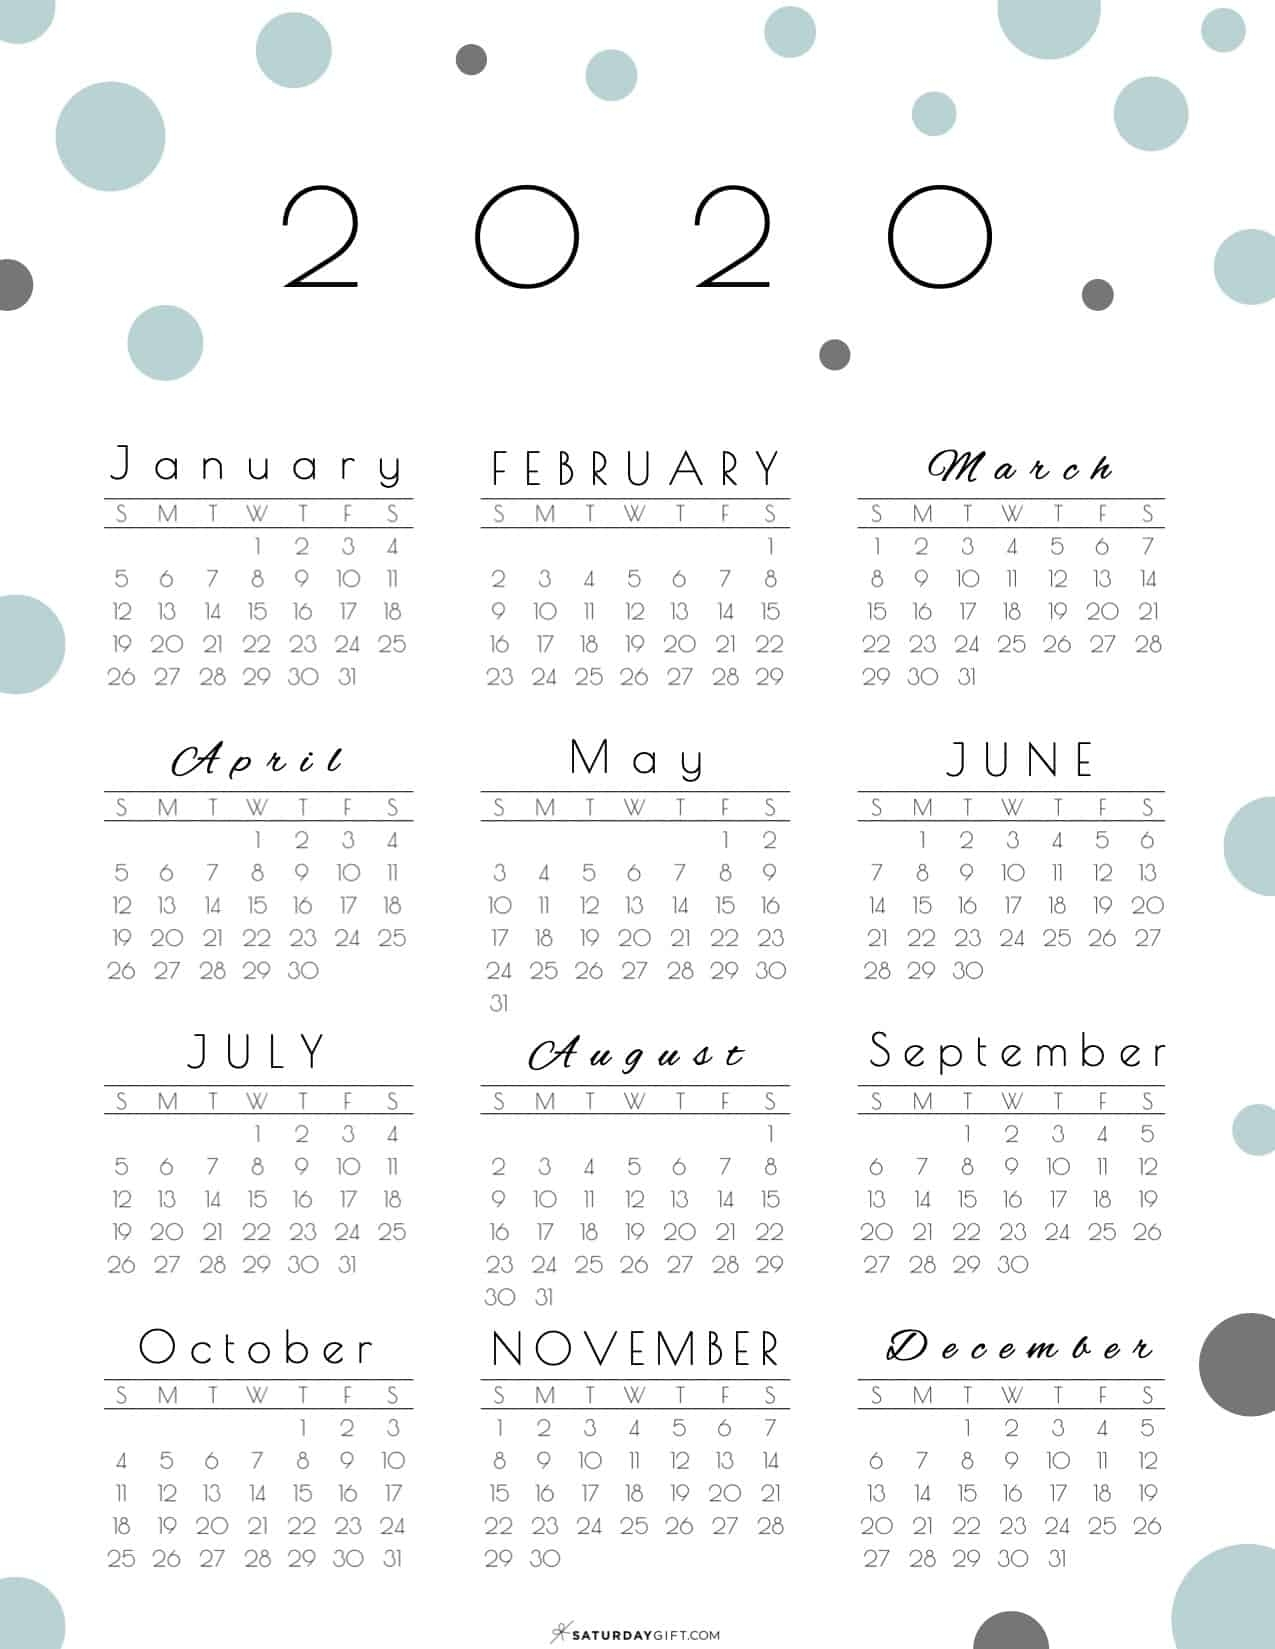 Year At A Glance Calendar 2020 - Pretty (And Free!) Printable in Free Printable Year At A Glance Calendars No Download 2020